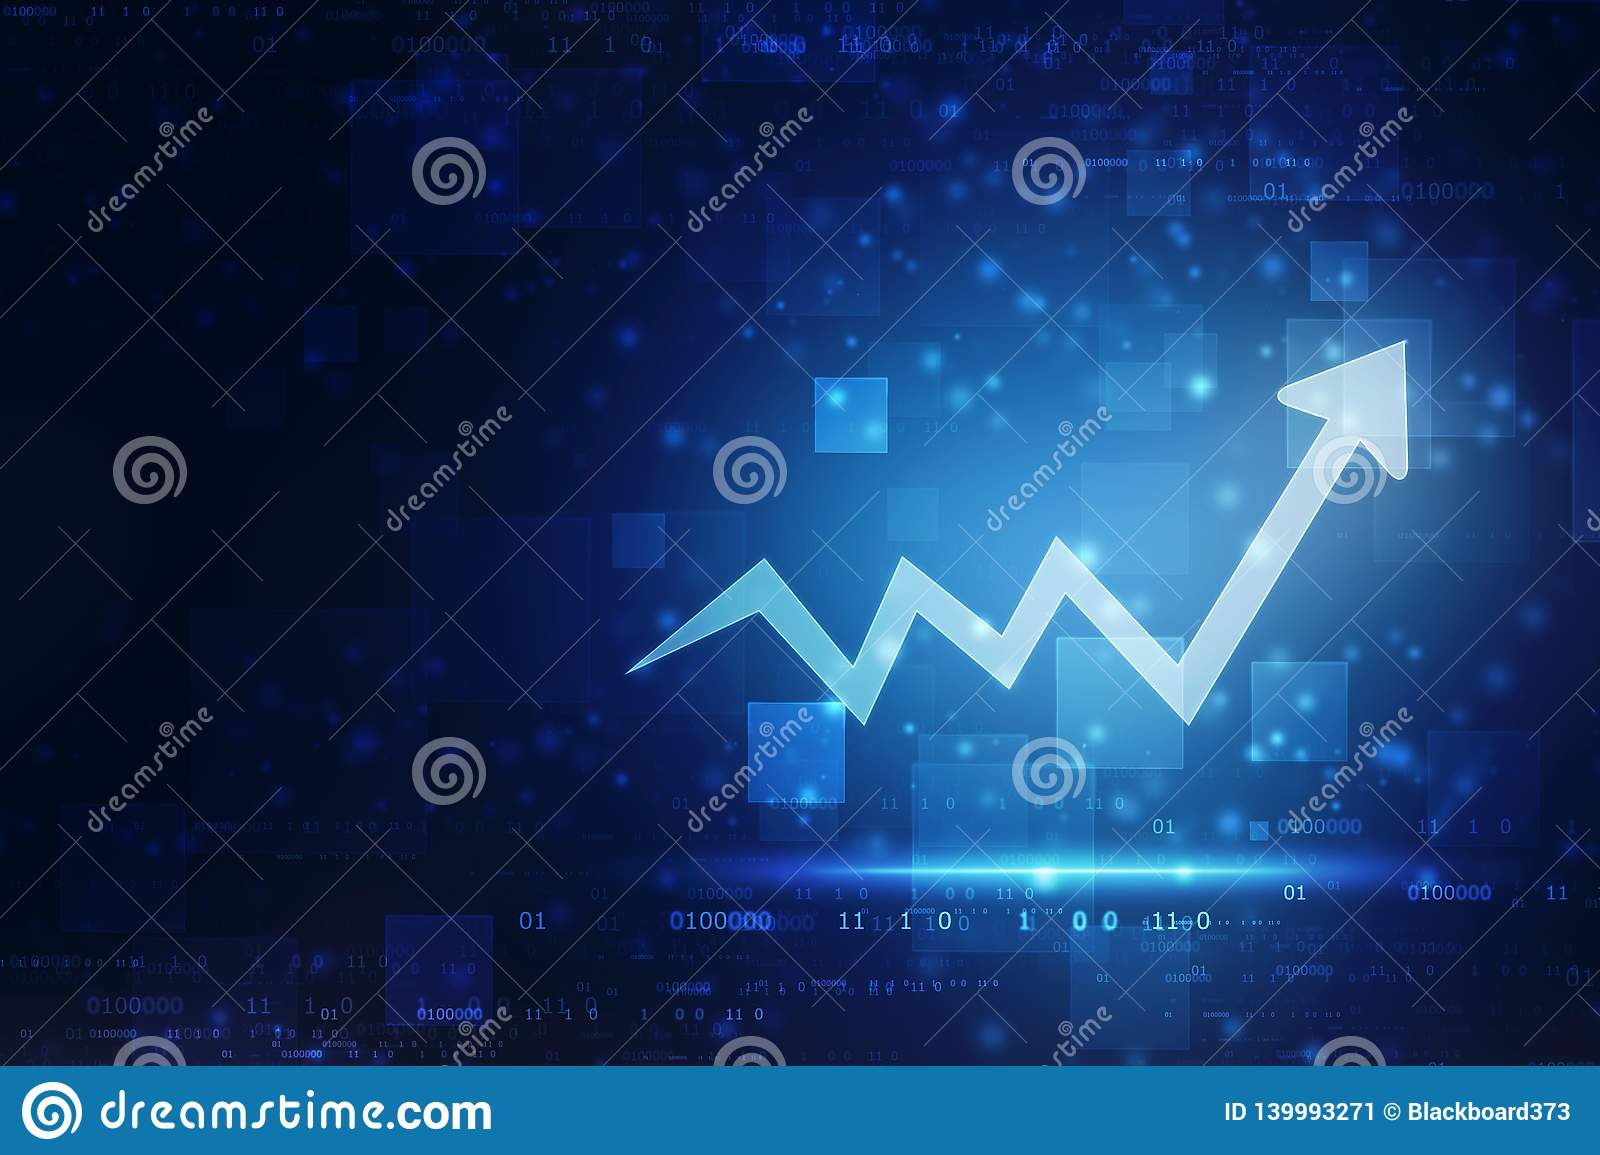 Futuristic raise arrow chart digital transformation abstract technology background, stock market and investment economy background